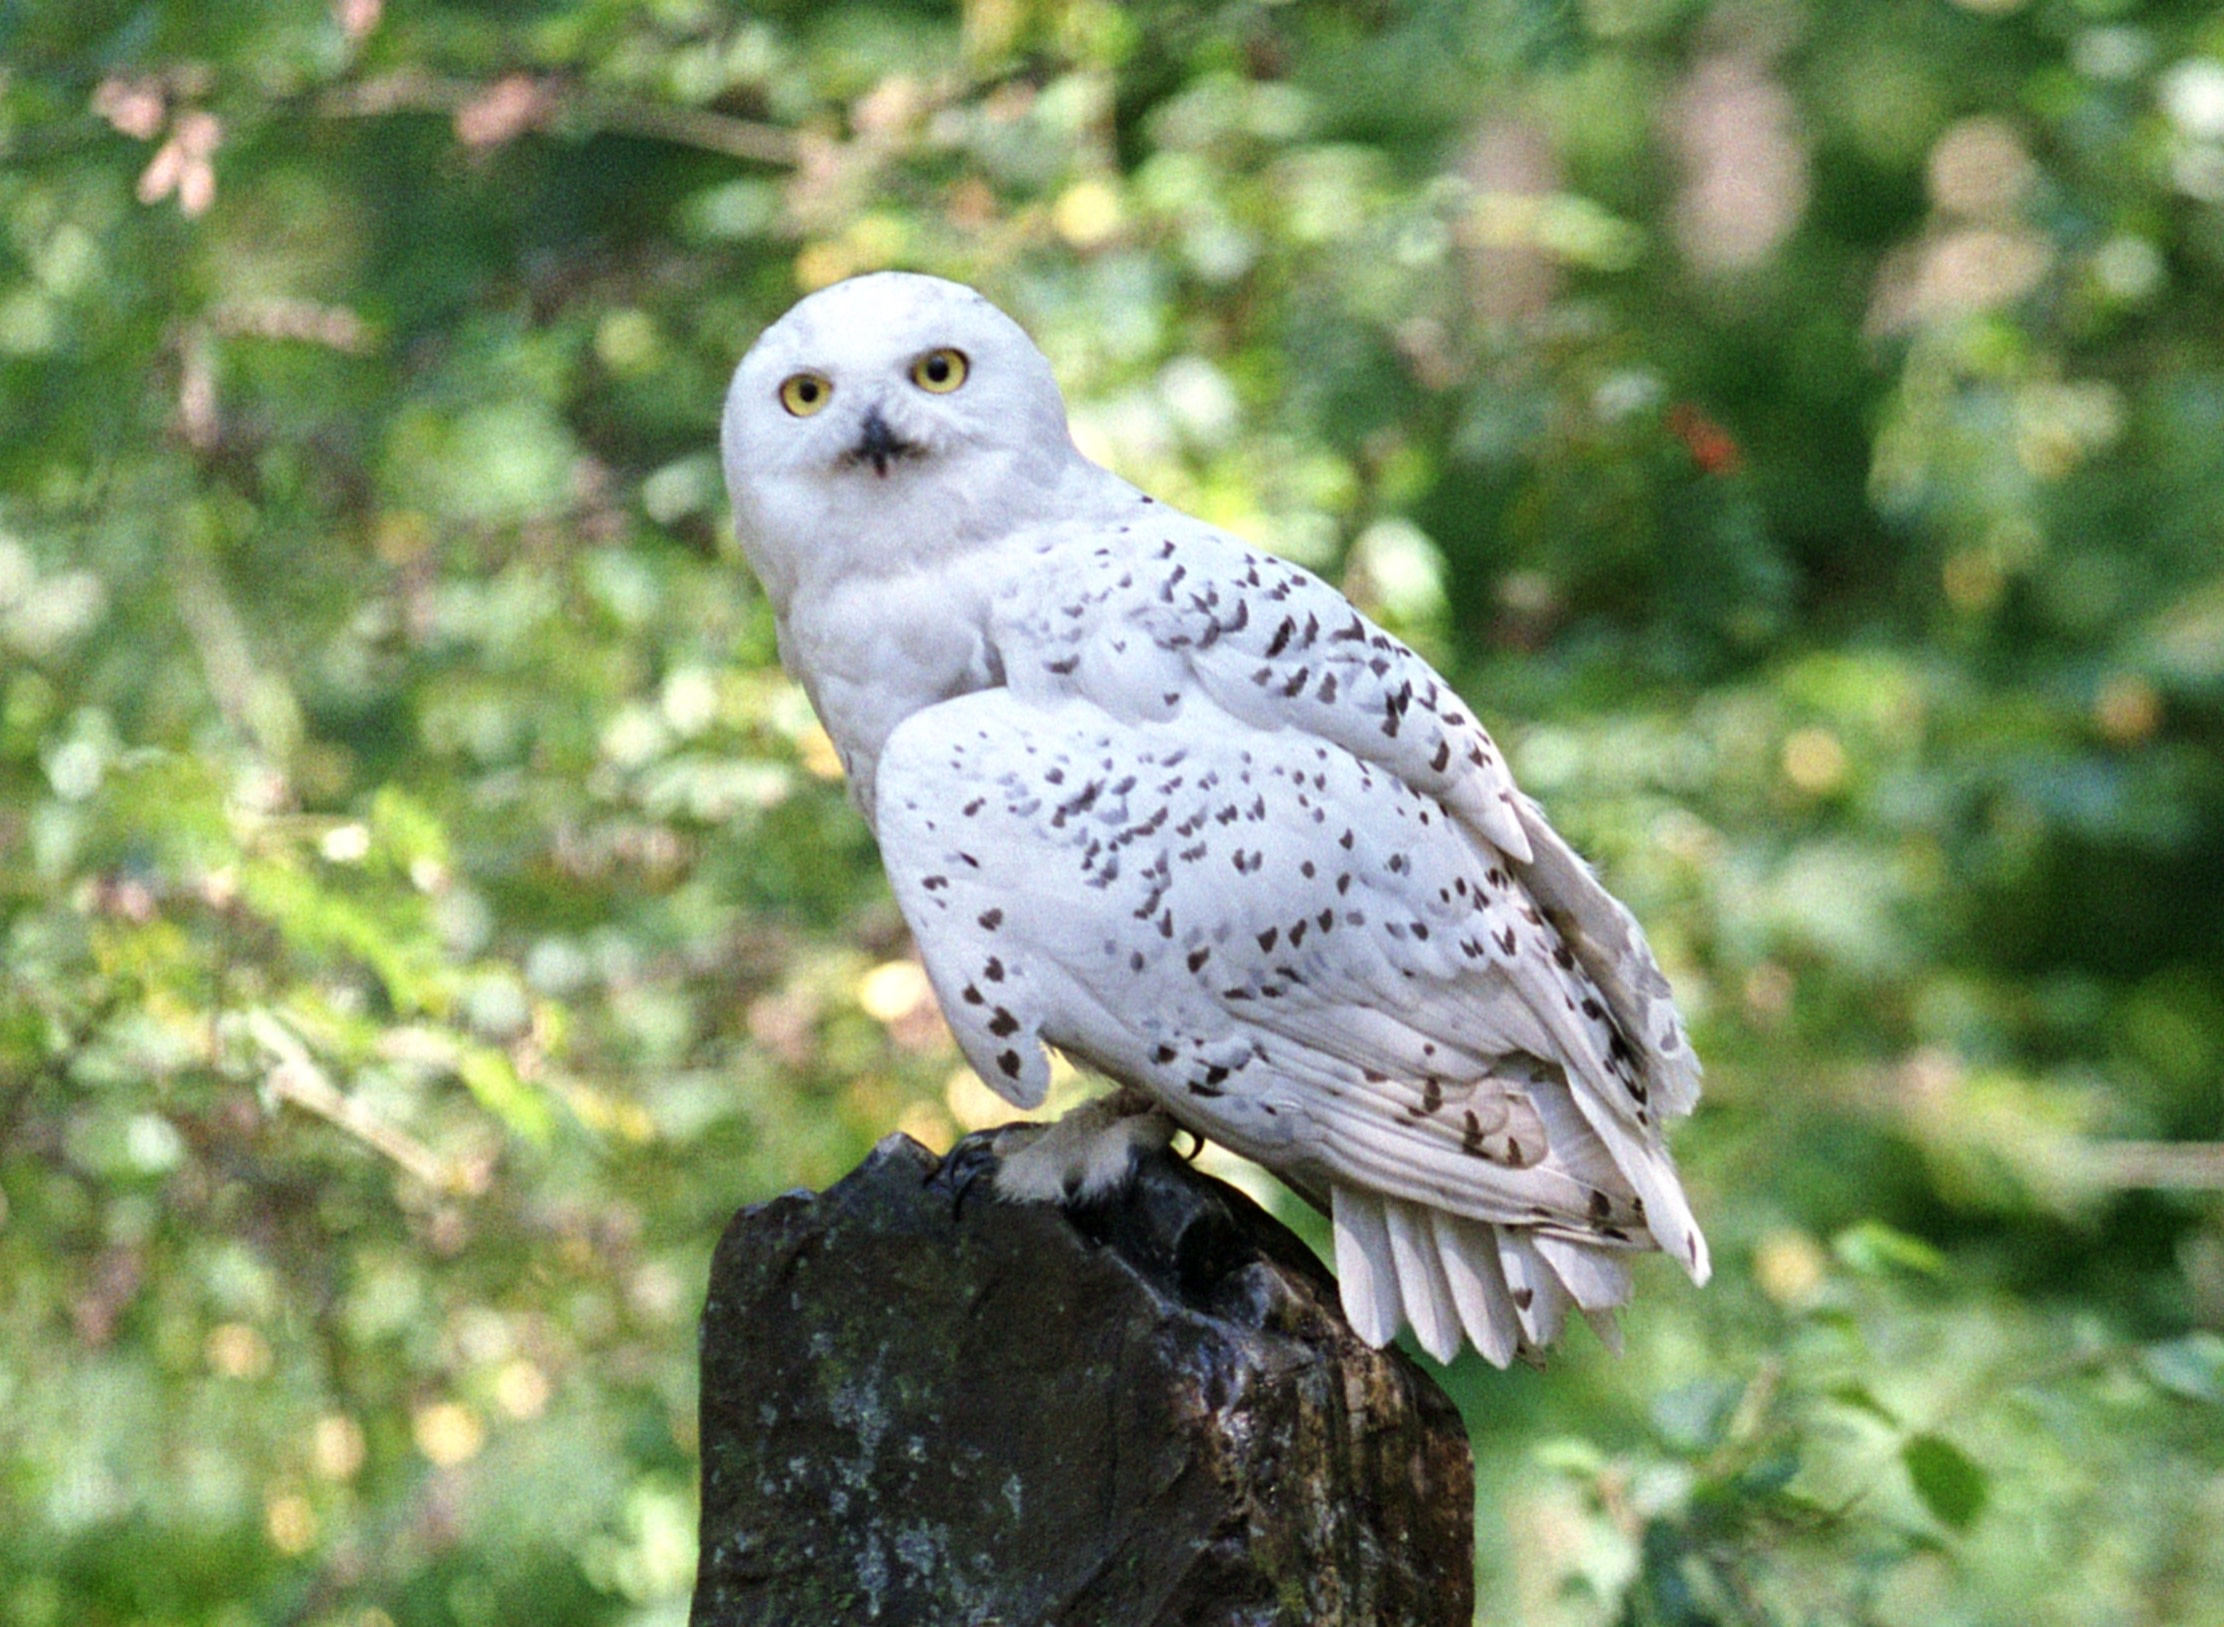 Hedwig WB F3 HedwigInTheForest Still 100615 Port